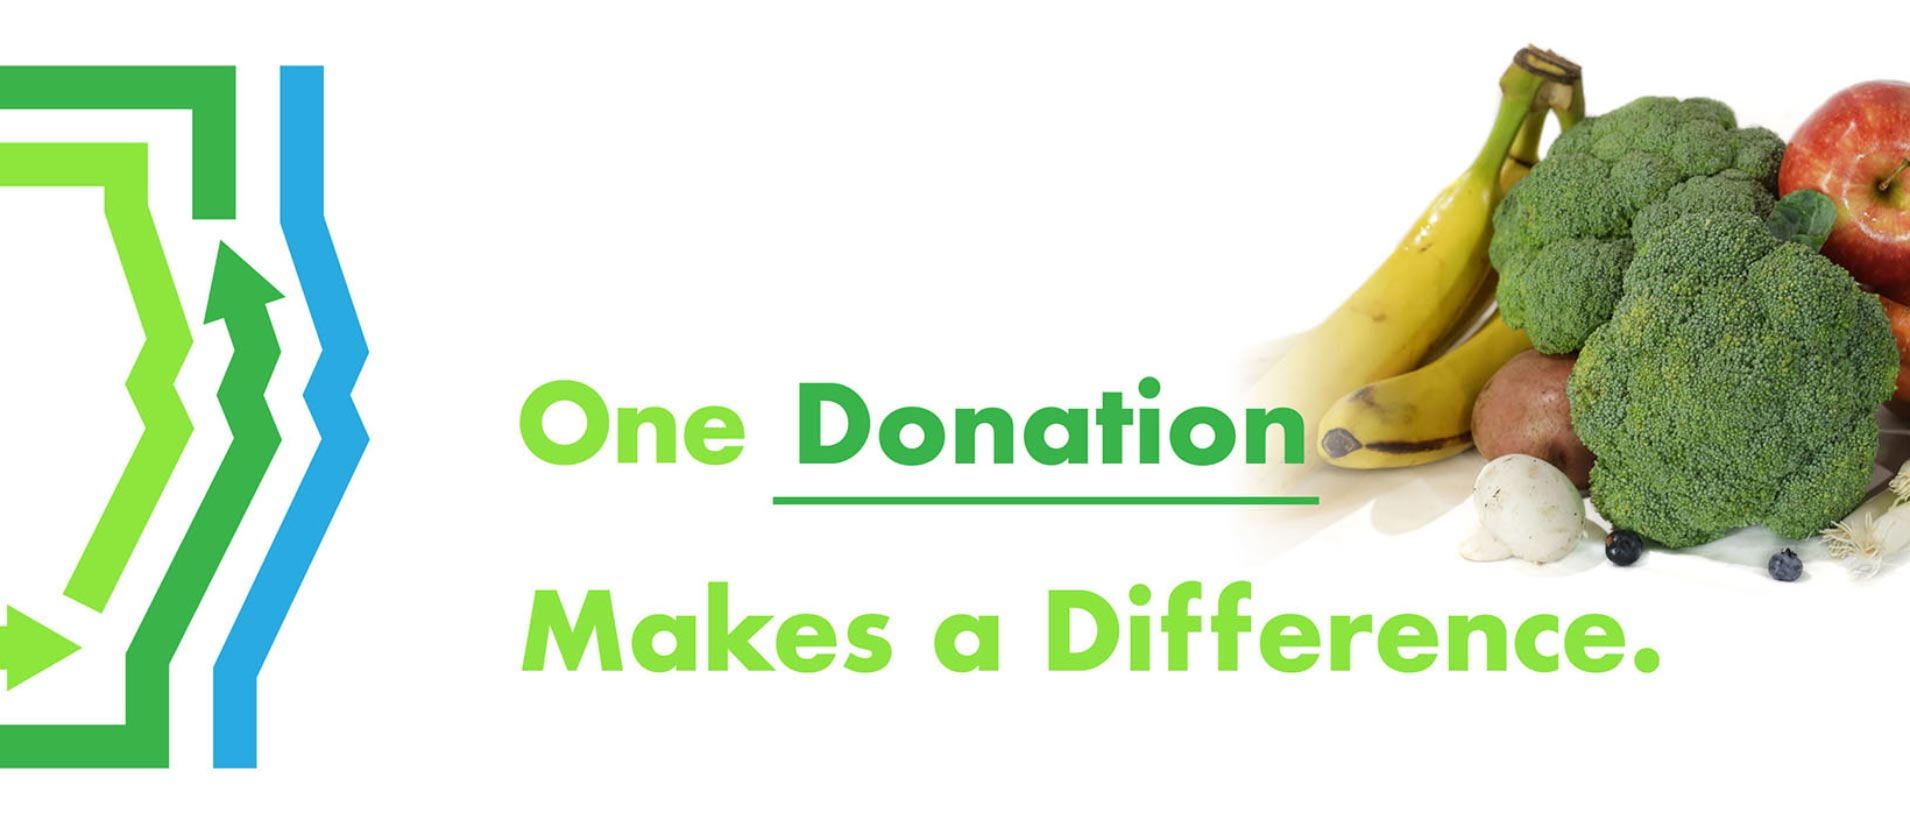 SCFB-Donate-Makes-Difference-1910x834_c_optimised